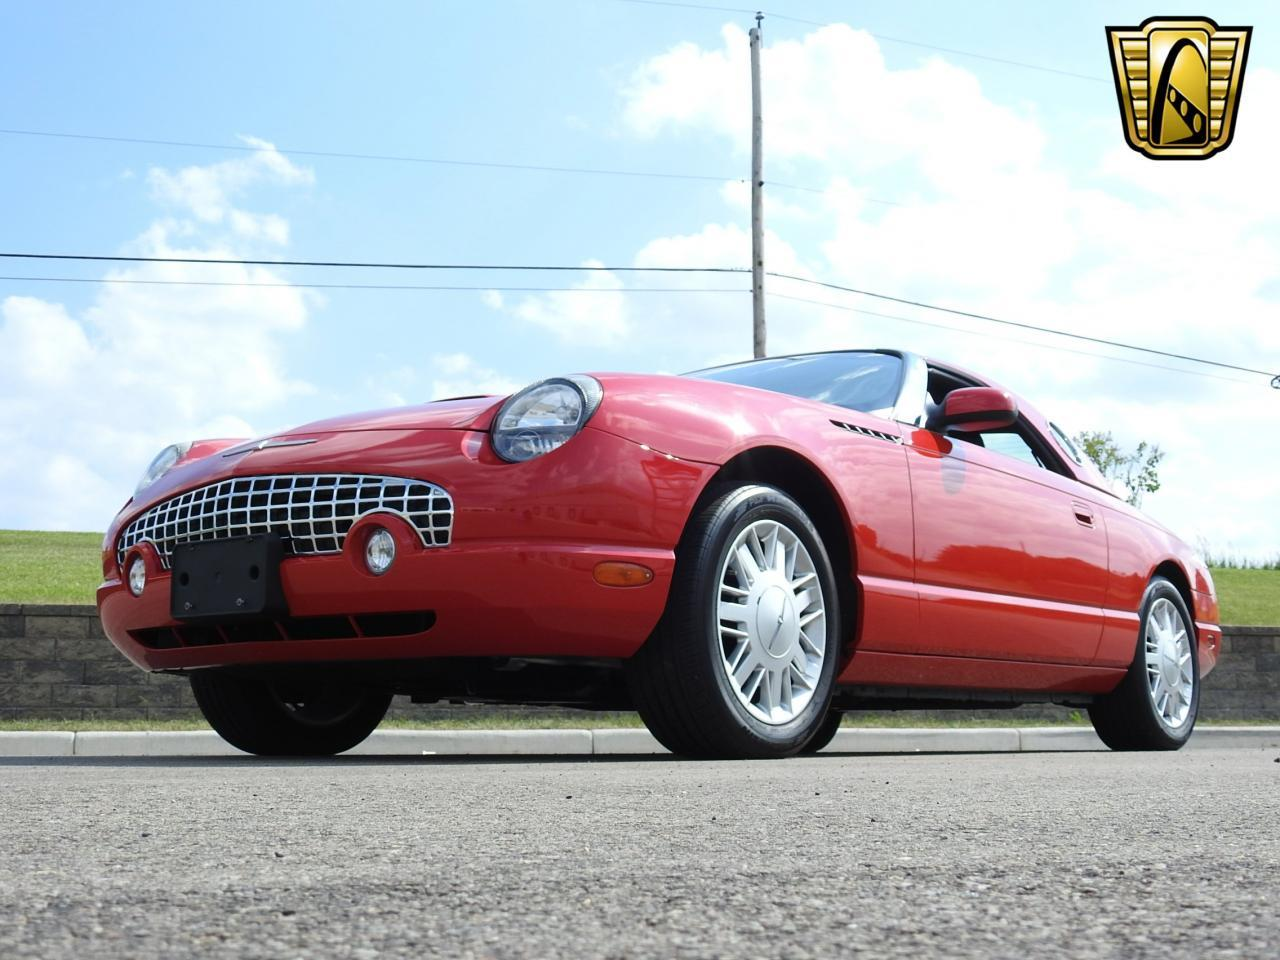 Large Picture of '02 Ford Thunderbird located in Kenosha Wisconsin - $19,995.00 - LBSH